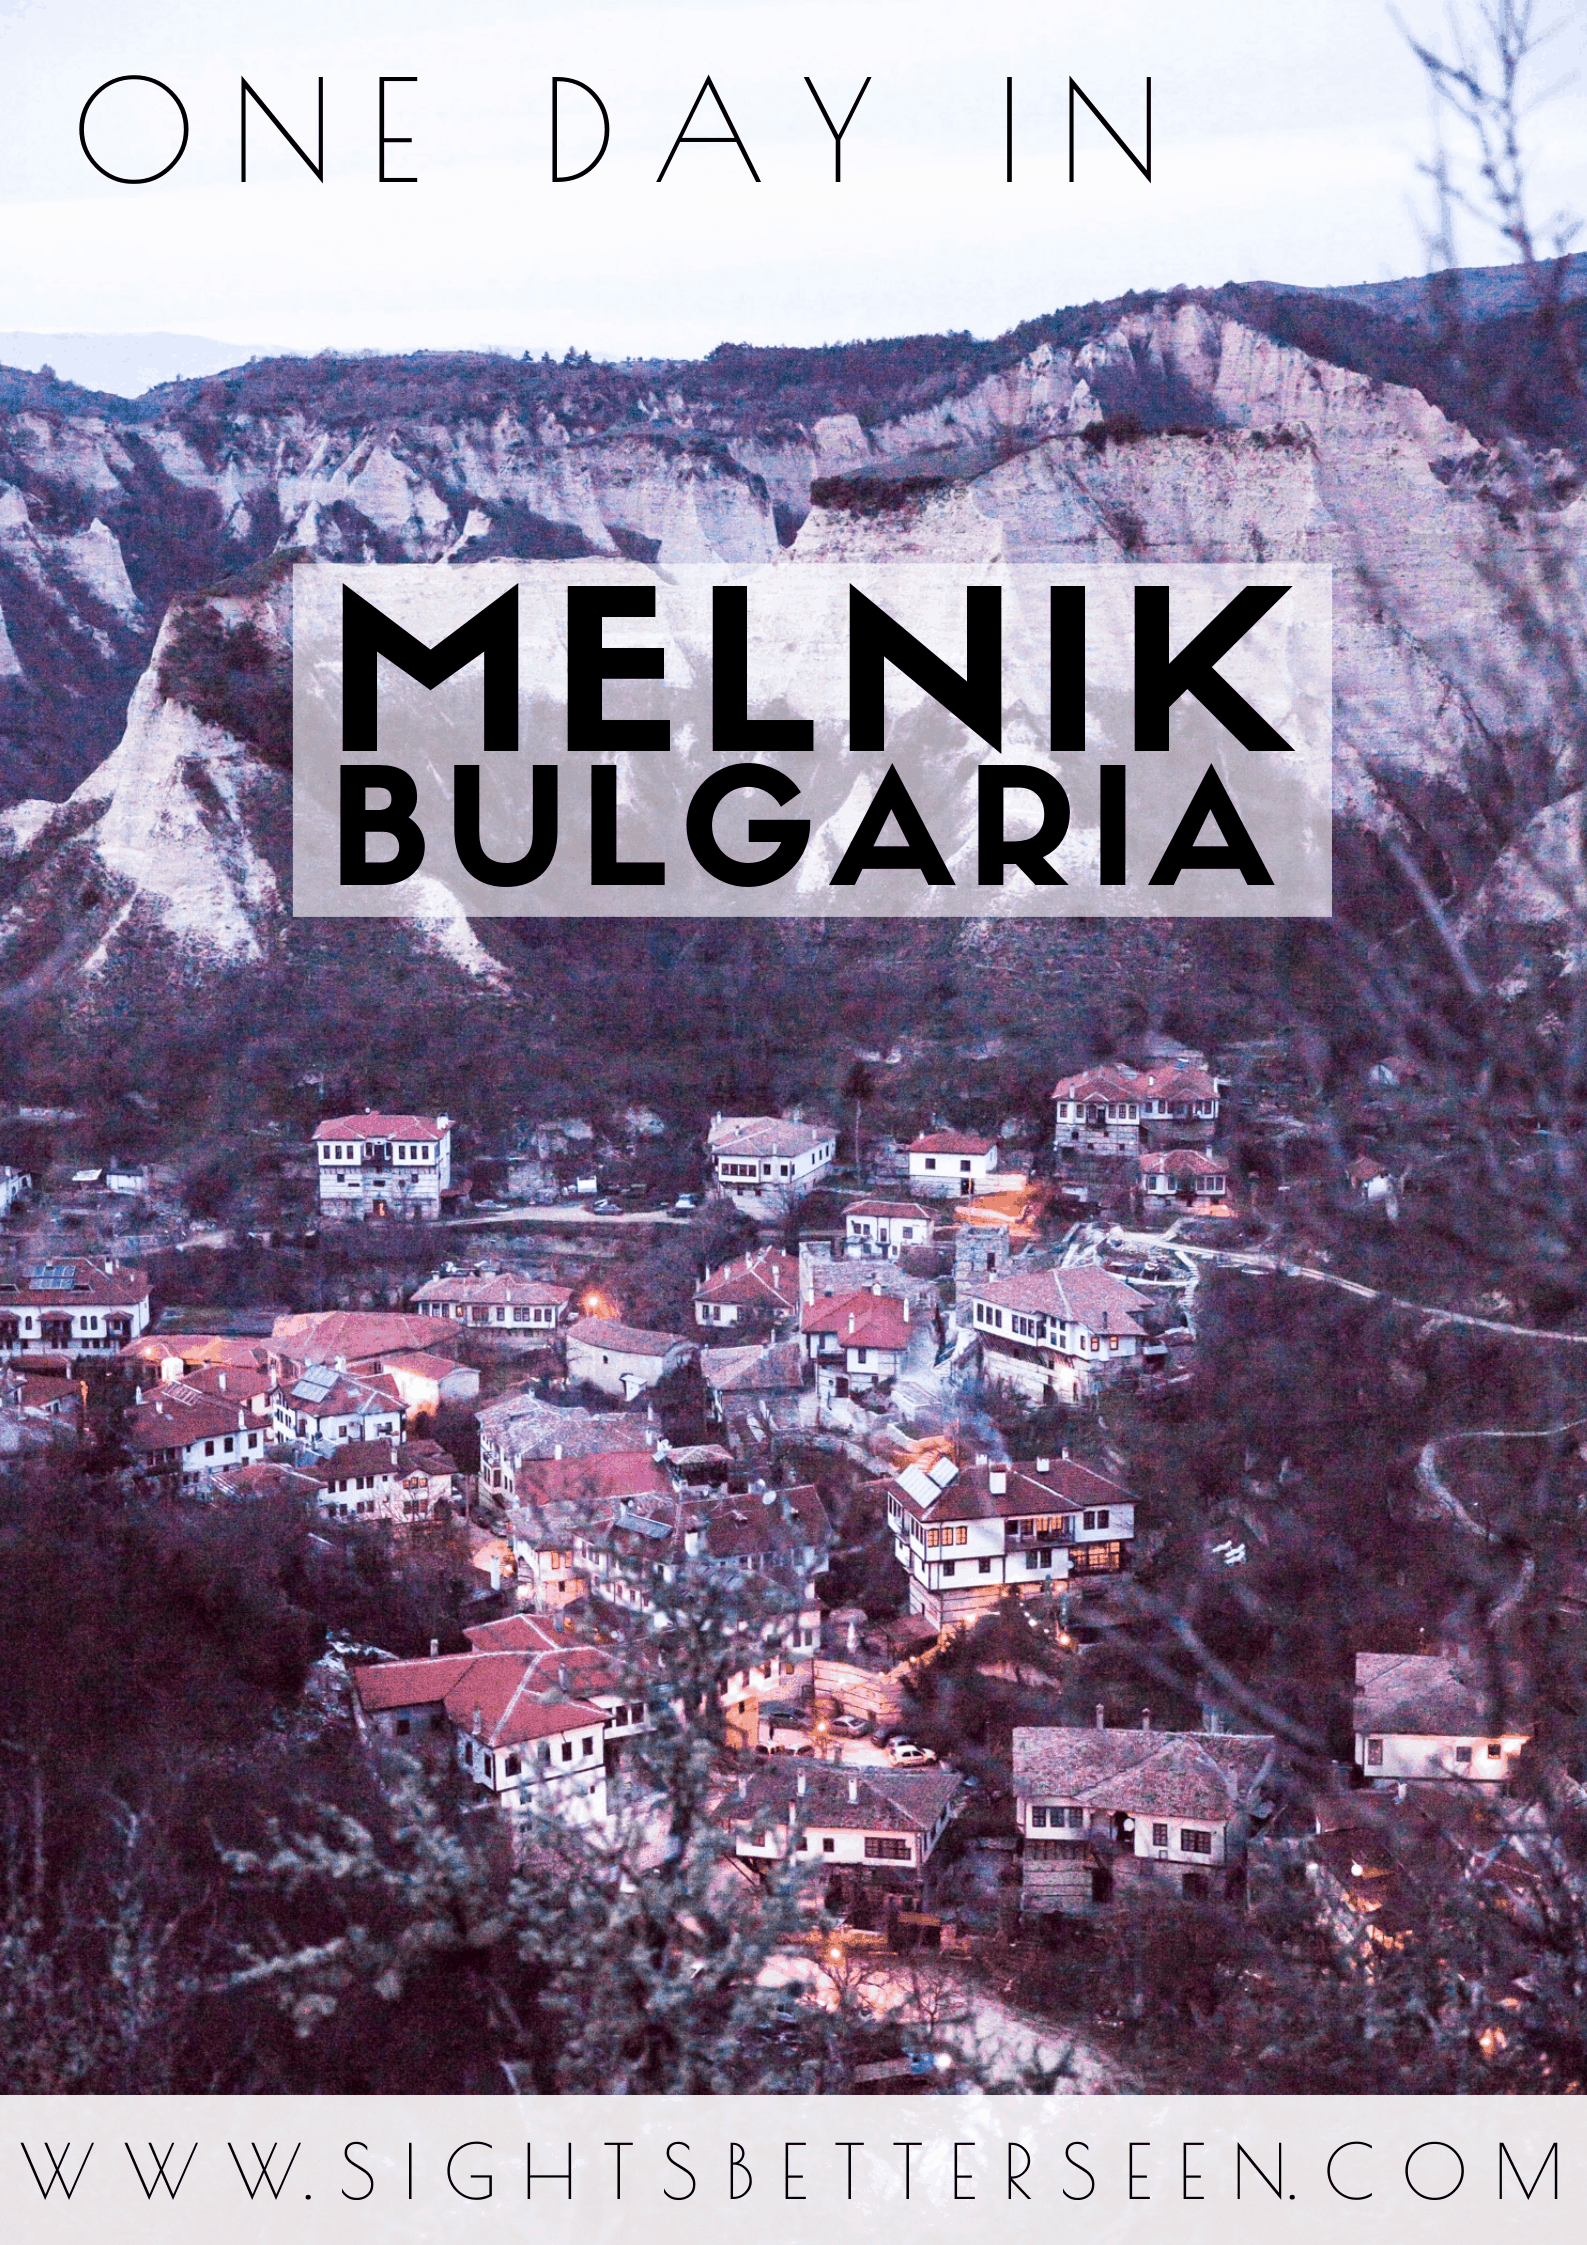 One day itinerary for Melnik, Bulgaria including wine, the Rozhen Monastery, Melnik Pyramids, and the best view of the town!